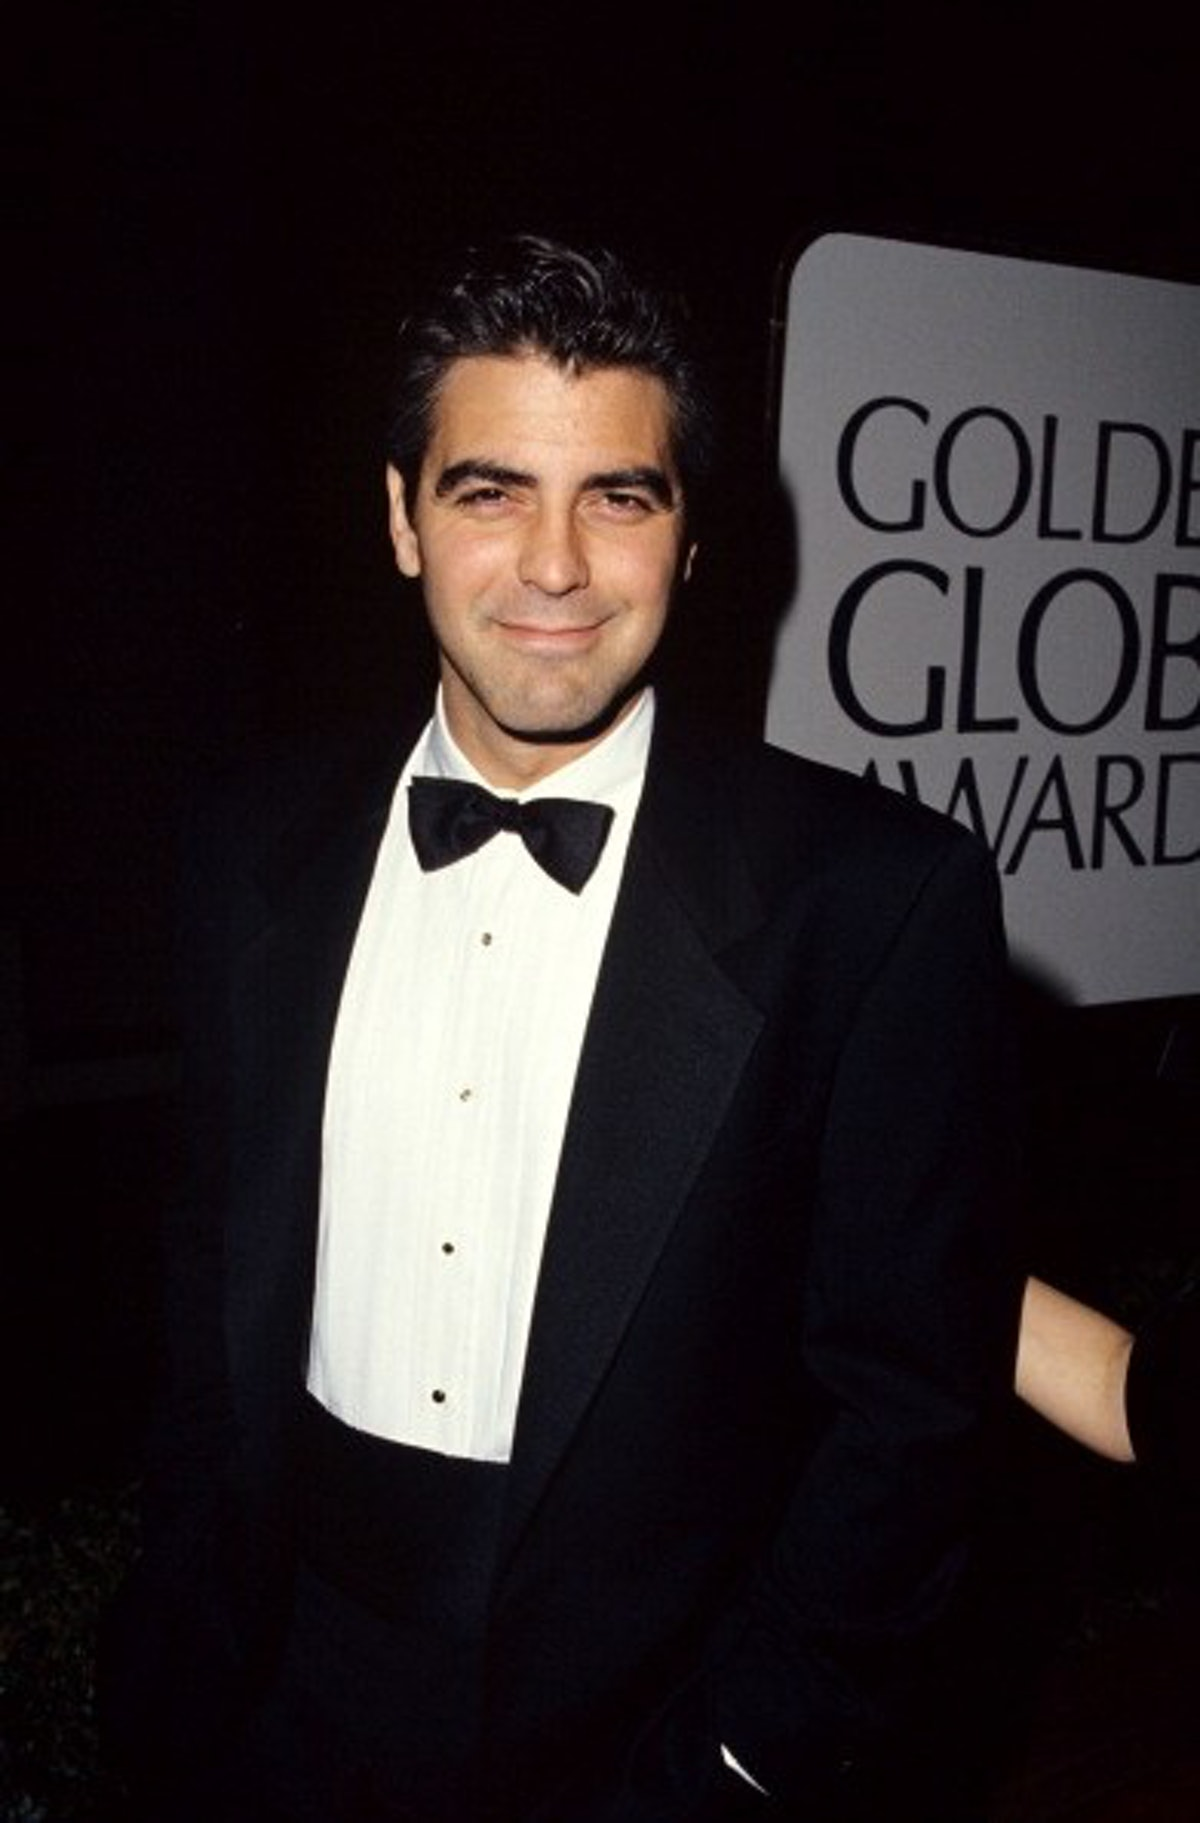 George in a black tux with black hair